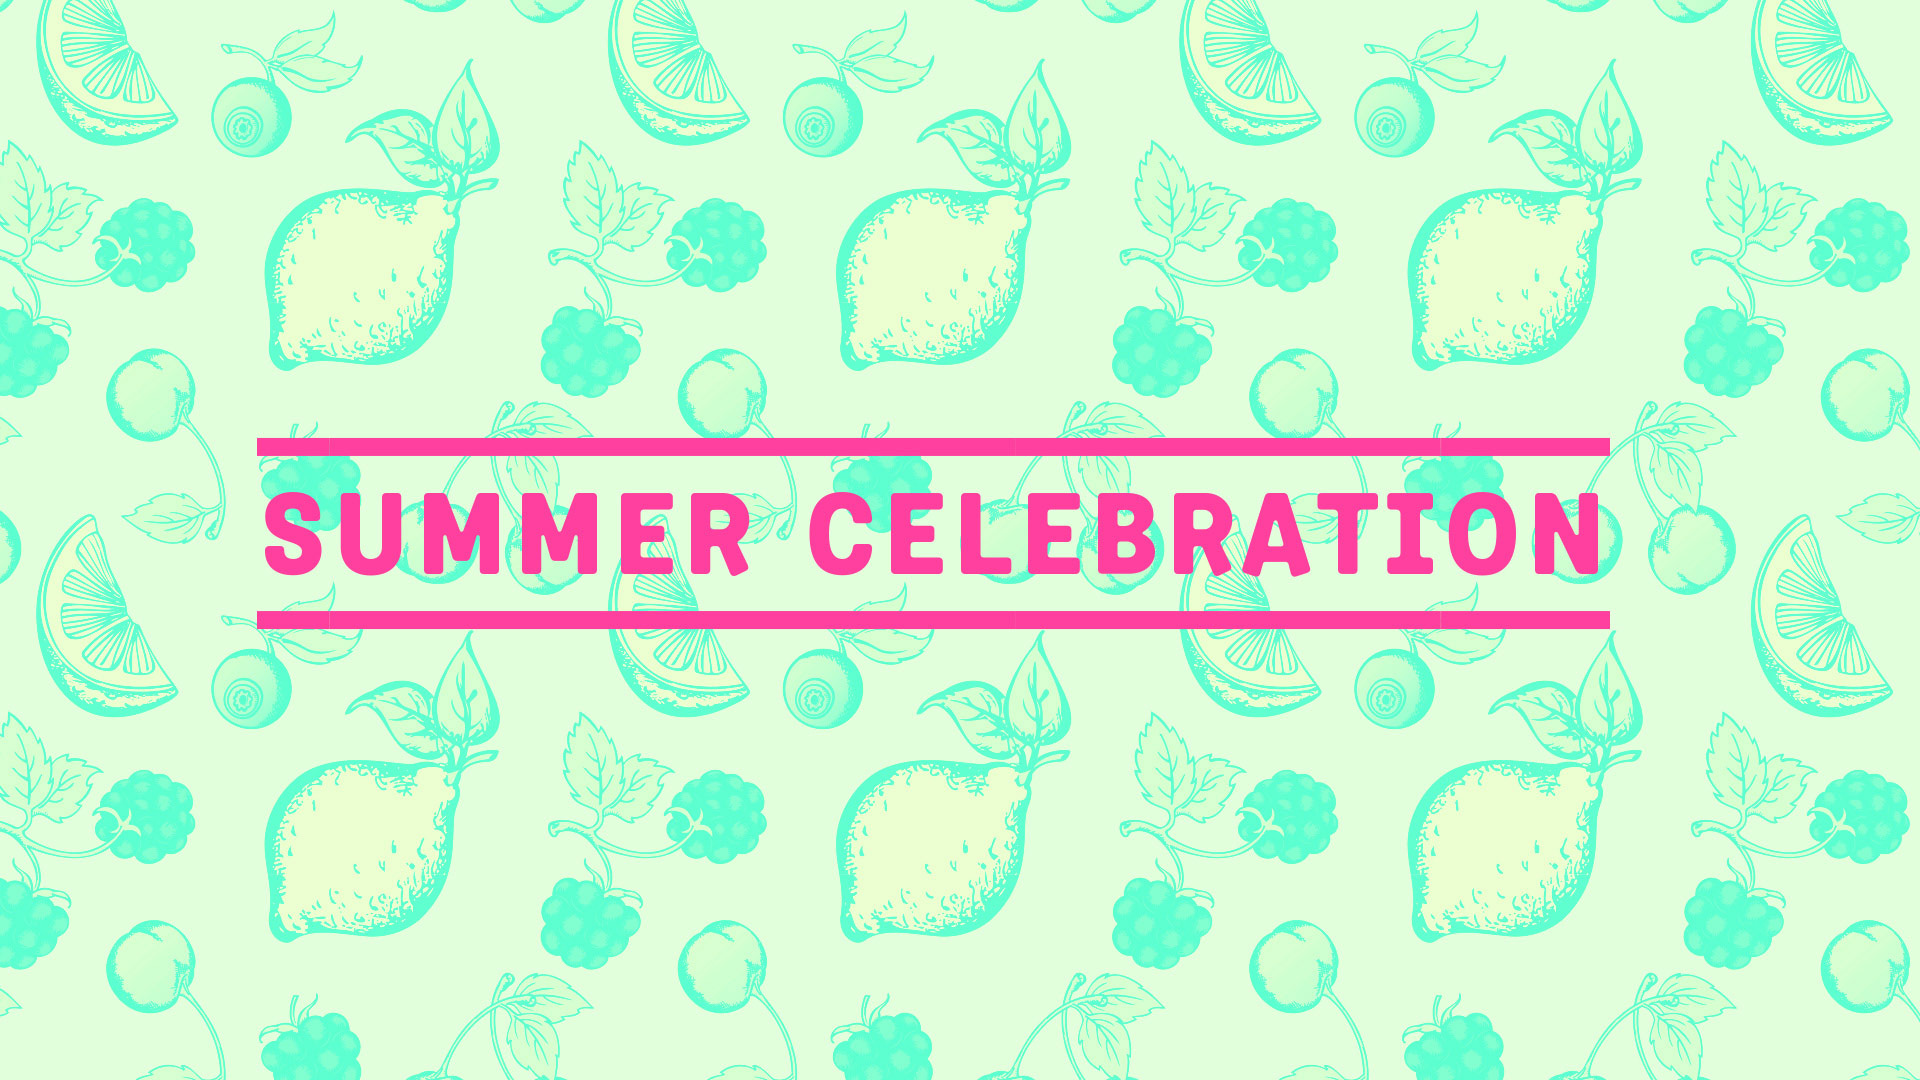 Summer Celebration - CC